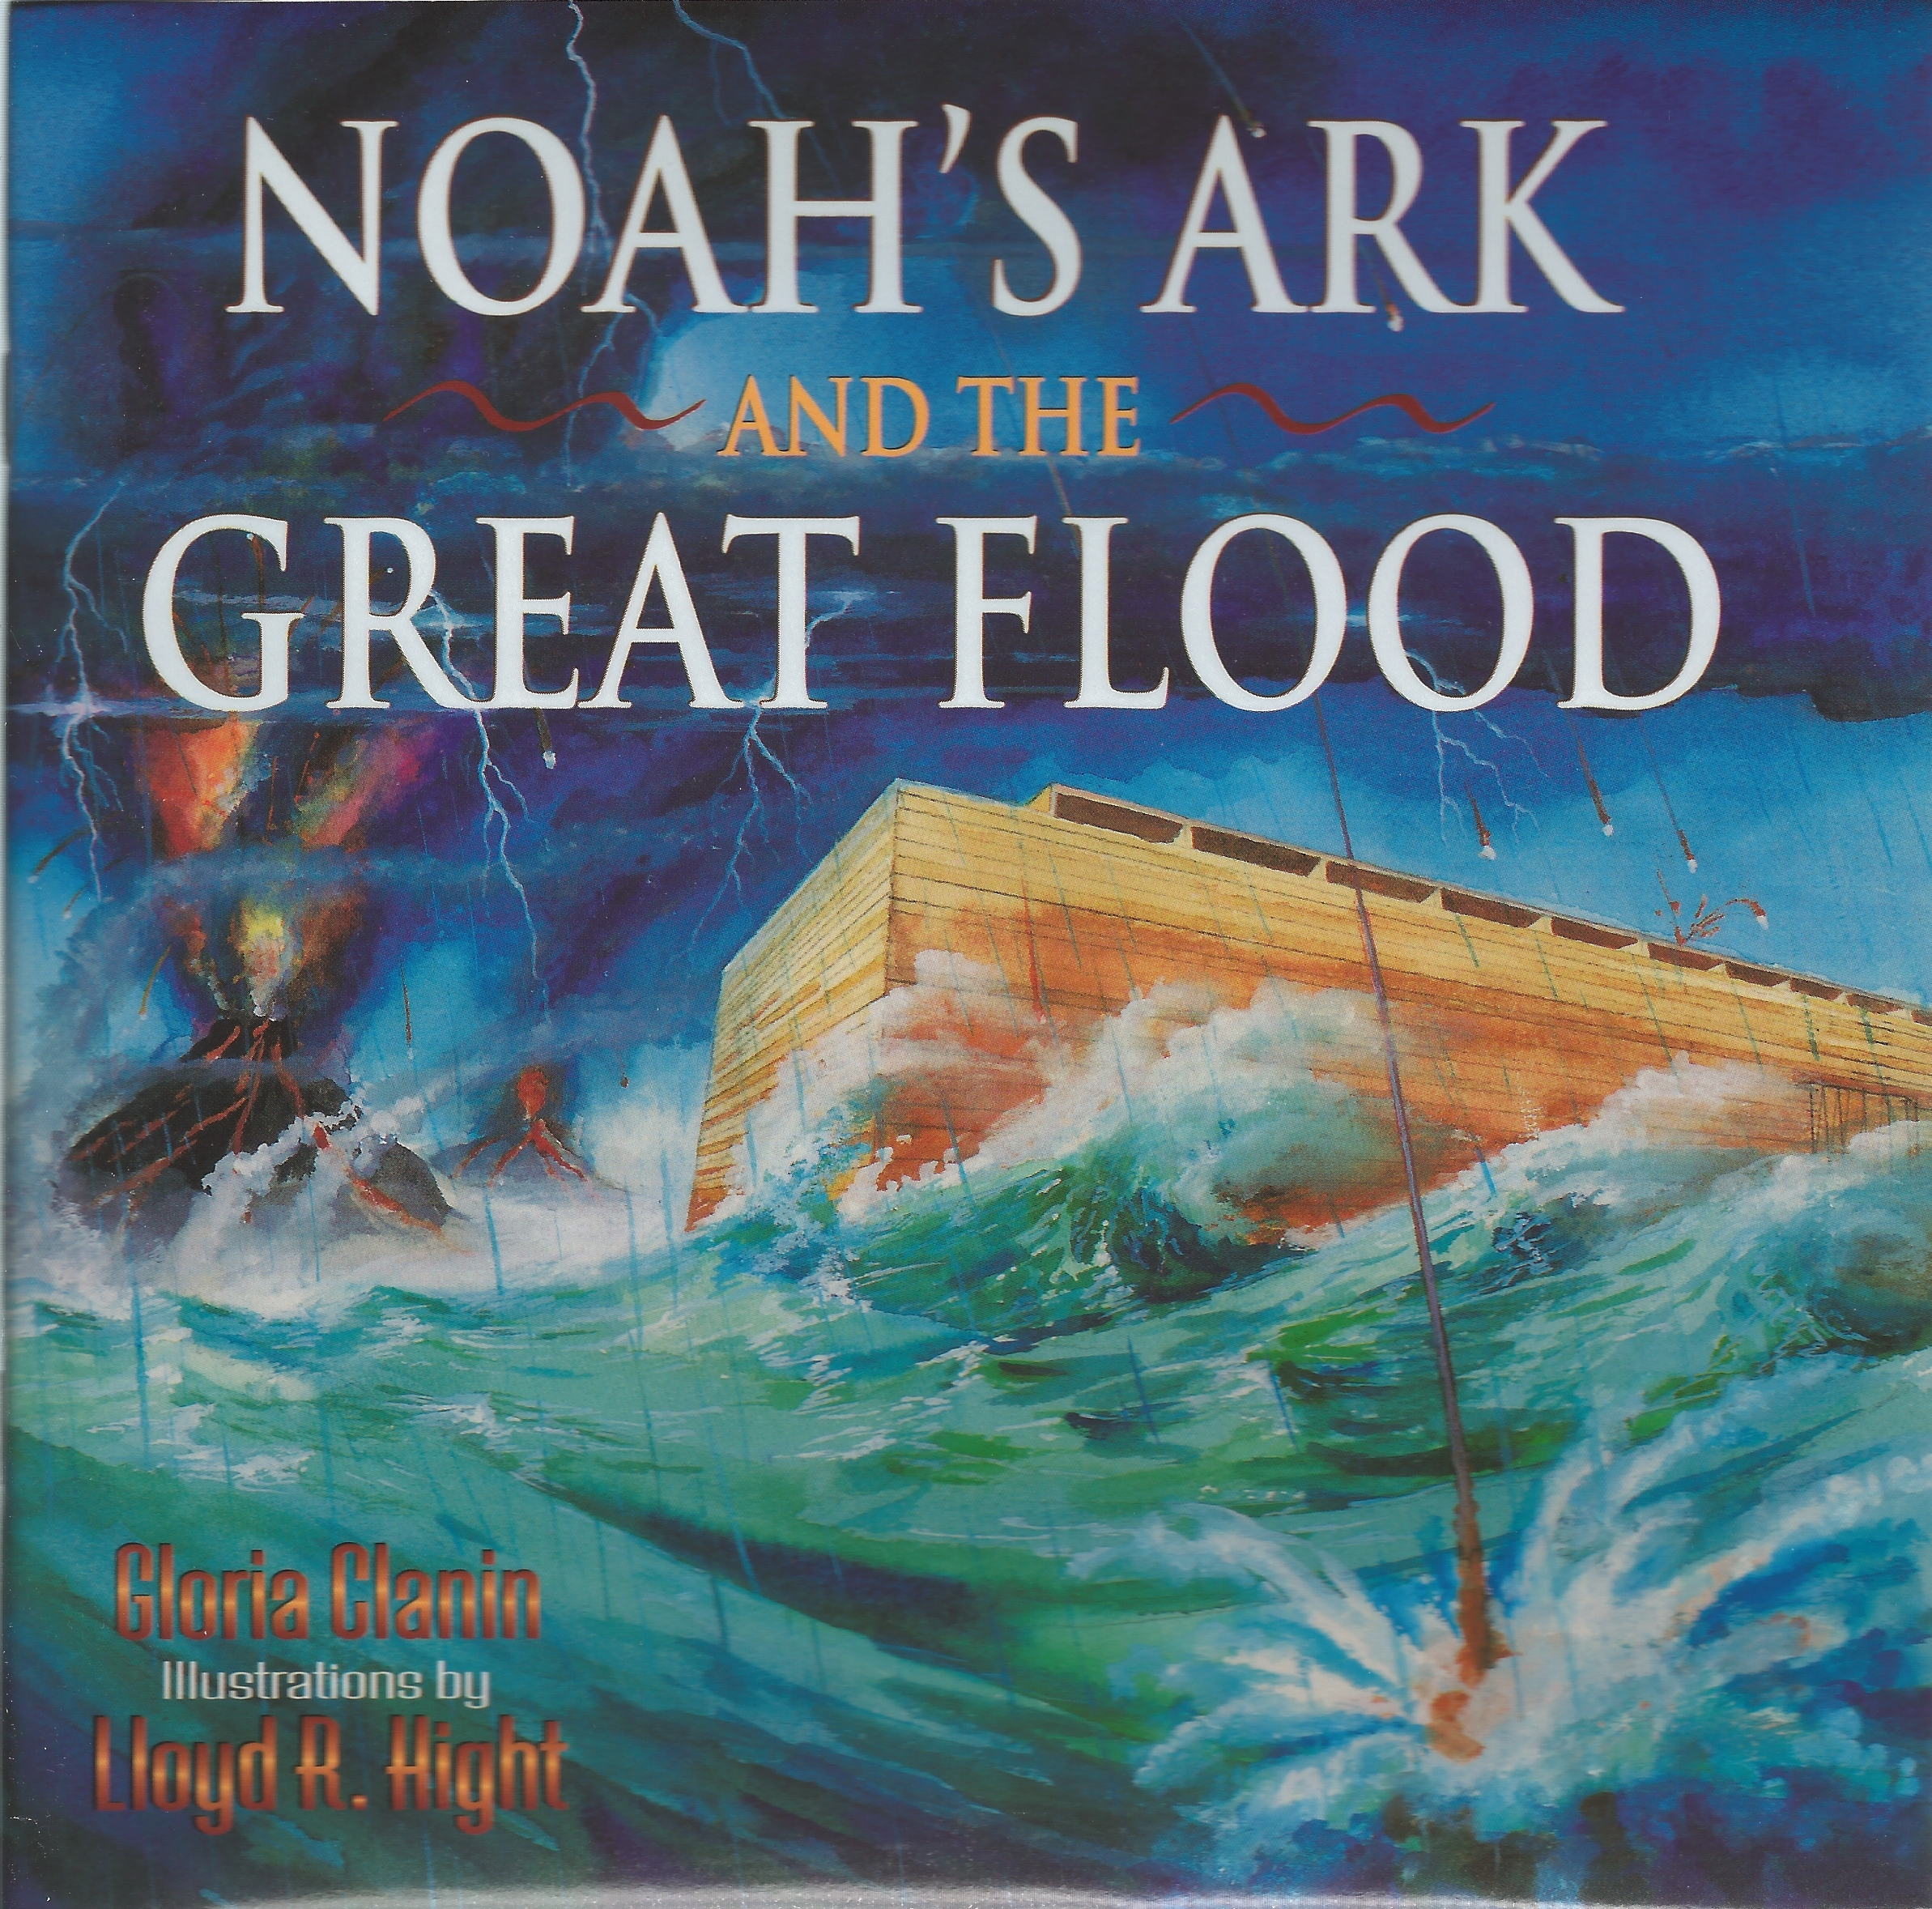 NOAH'S ARK AND THE GREAT FLOOD Gloria Clanin